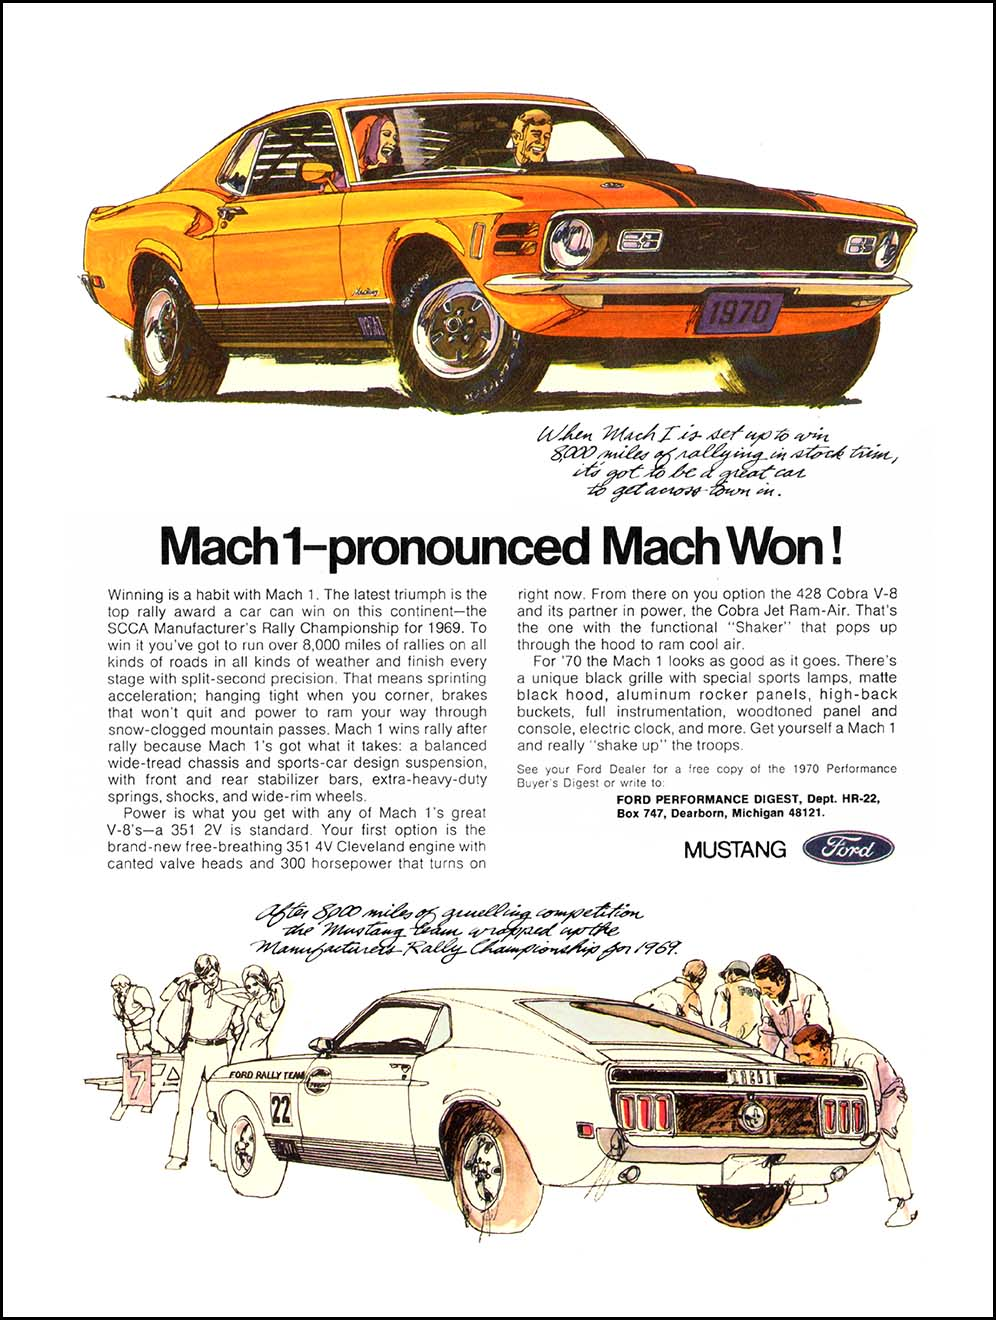 1966 ford mustang mach 1 advertisement